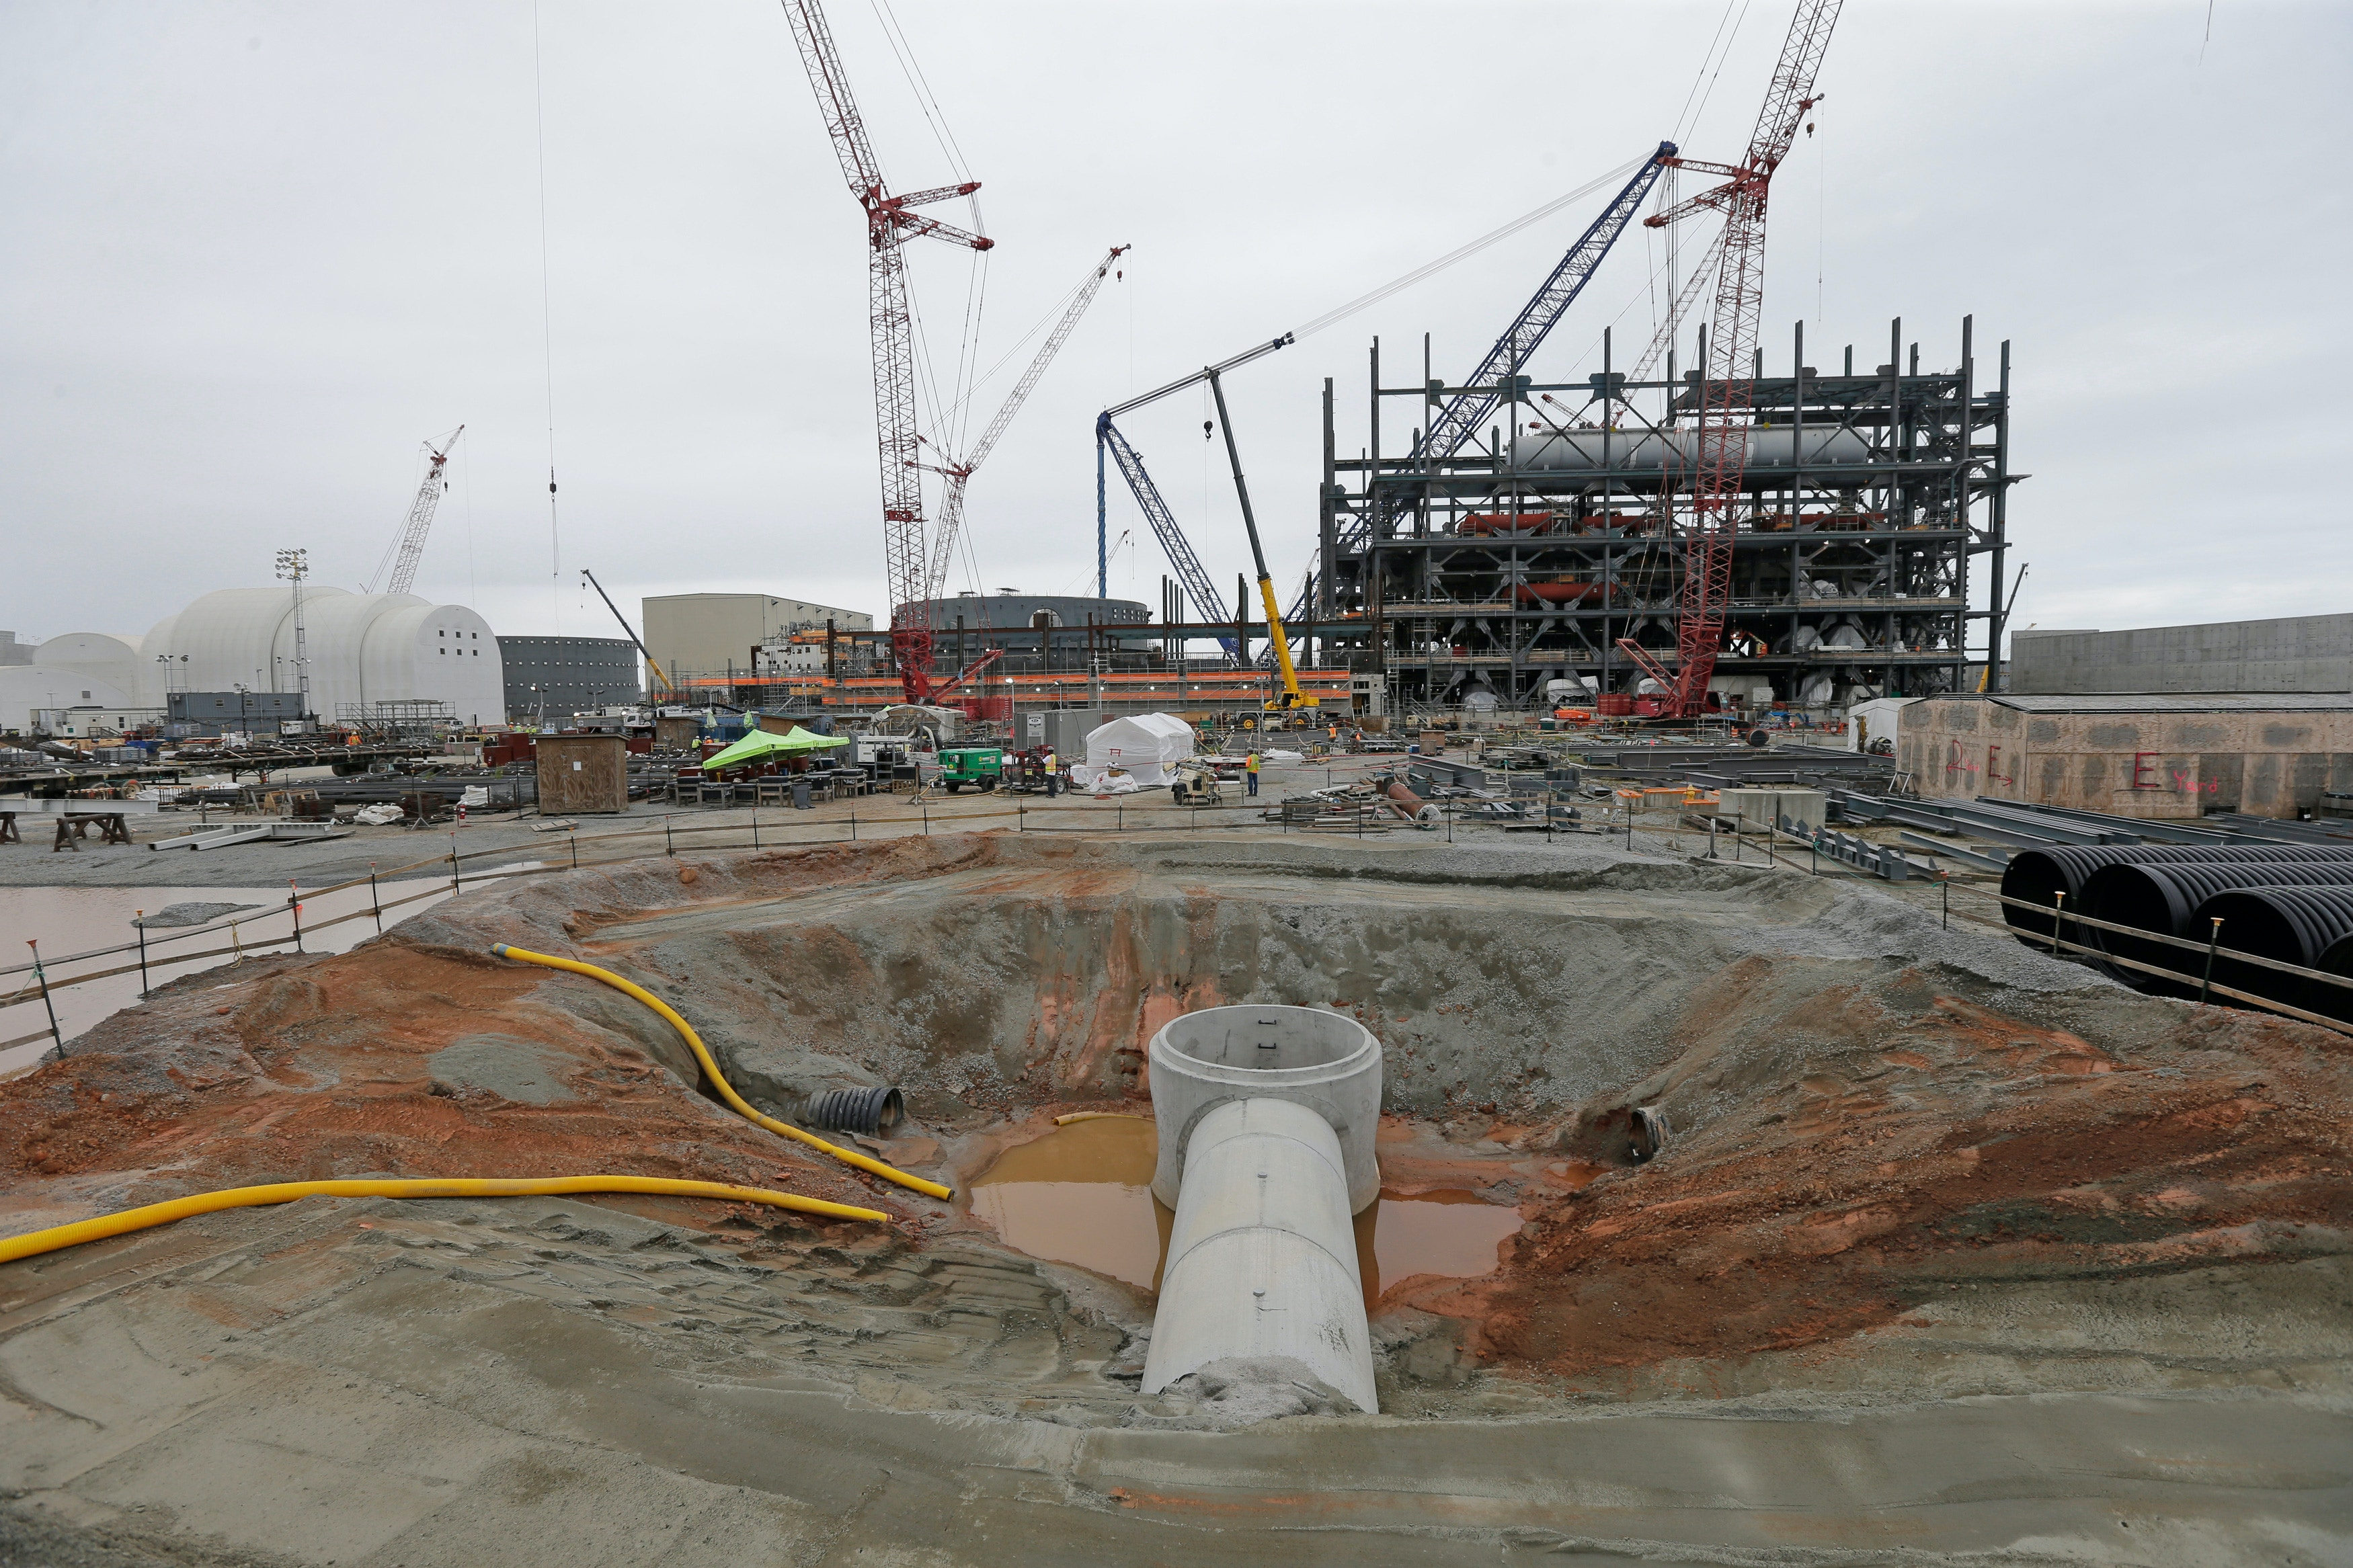 V.C. Summer Nuclear Station's unit two's turbine, right, and containment unit, center, are shown under construction near Jenkinsville, S.C., during a media tour of the facility Wednesday, Sept. 21, 2016.  SCE&G is seeking a 3.1 percent residential raise that would be the largest single rate increase since the utility began charging its 700,000 customers for the reactors' construction. The hike, which would take effect at the end of November if approved, would be the ninth such increase to pay for the $14 billion reactors since 2009. (AP Photo/Chuck Burton)